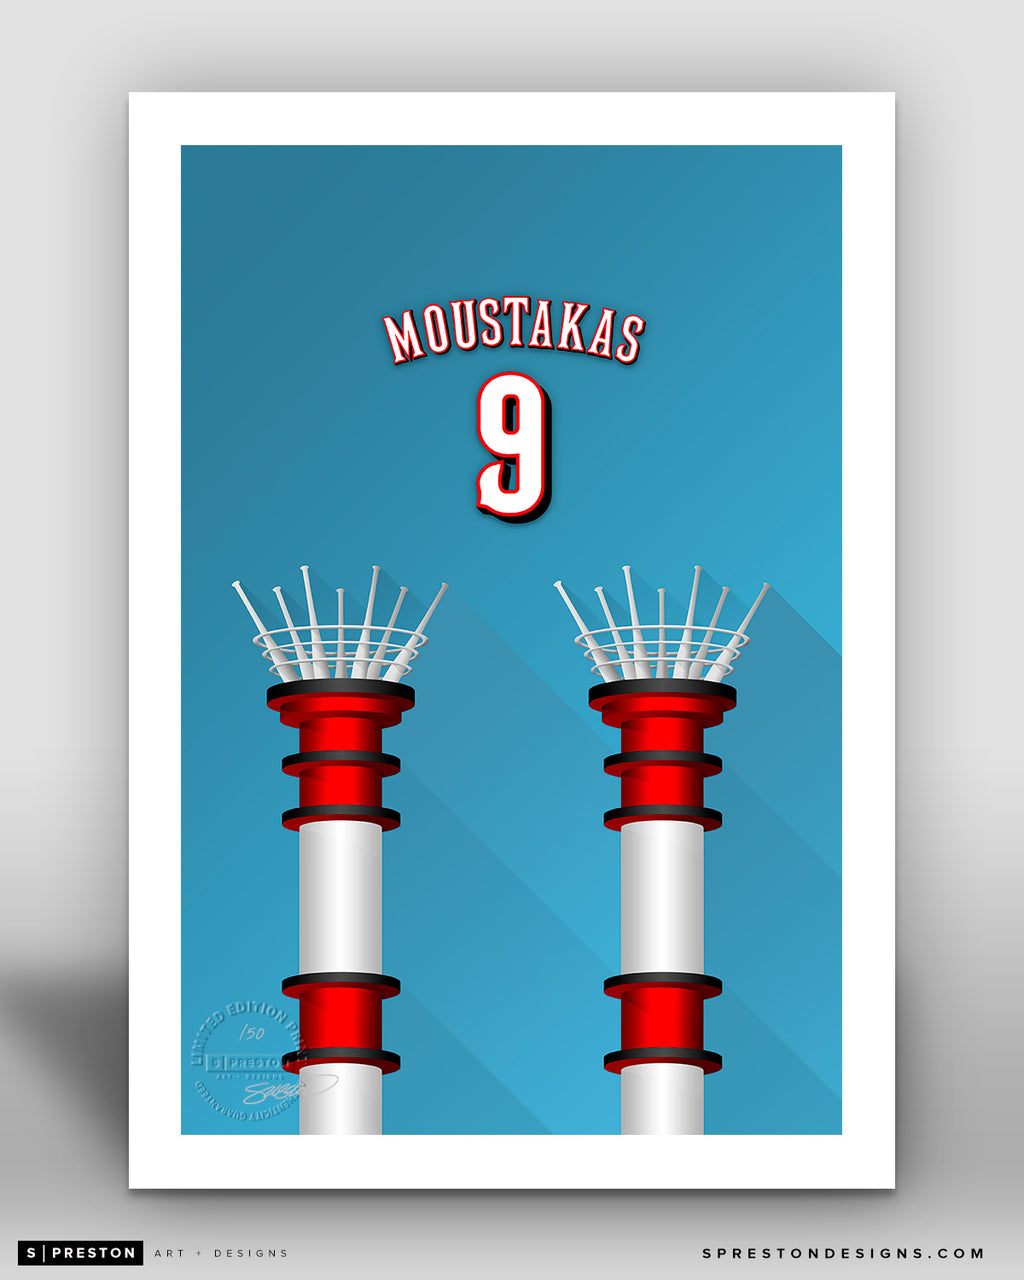 Minimalist Great American Ball Park - Player Series - Mike Moustakas - Cincinnati Reds - S. Preston